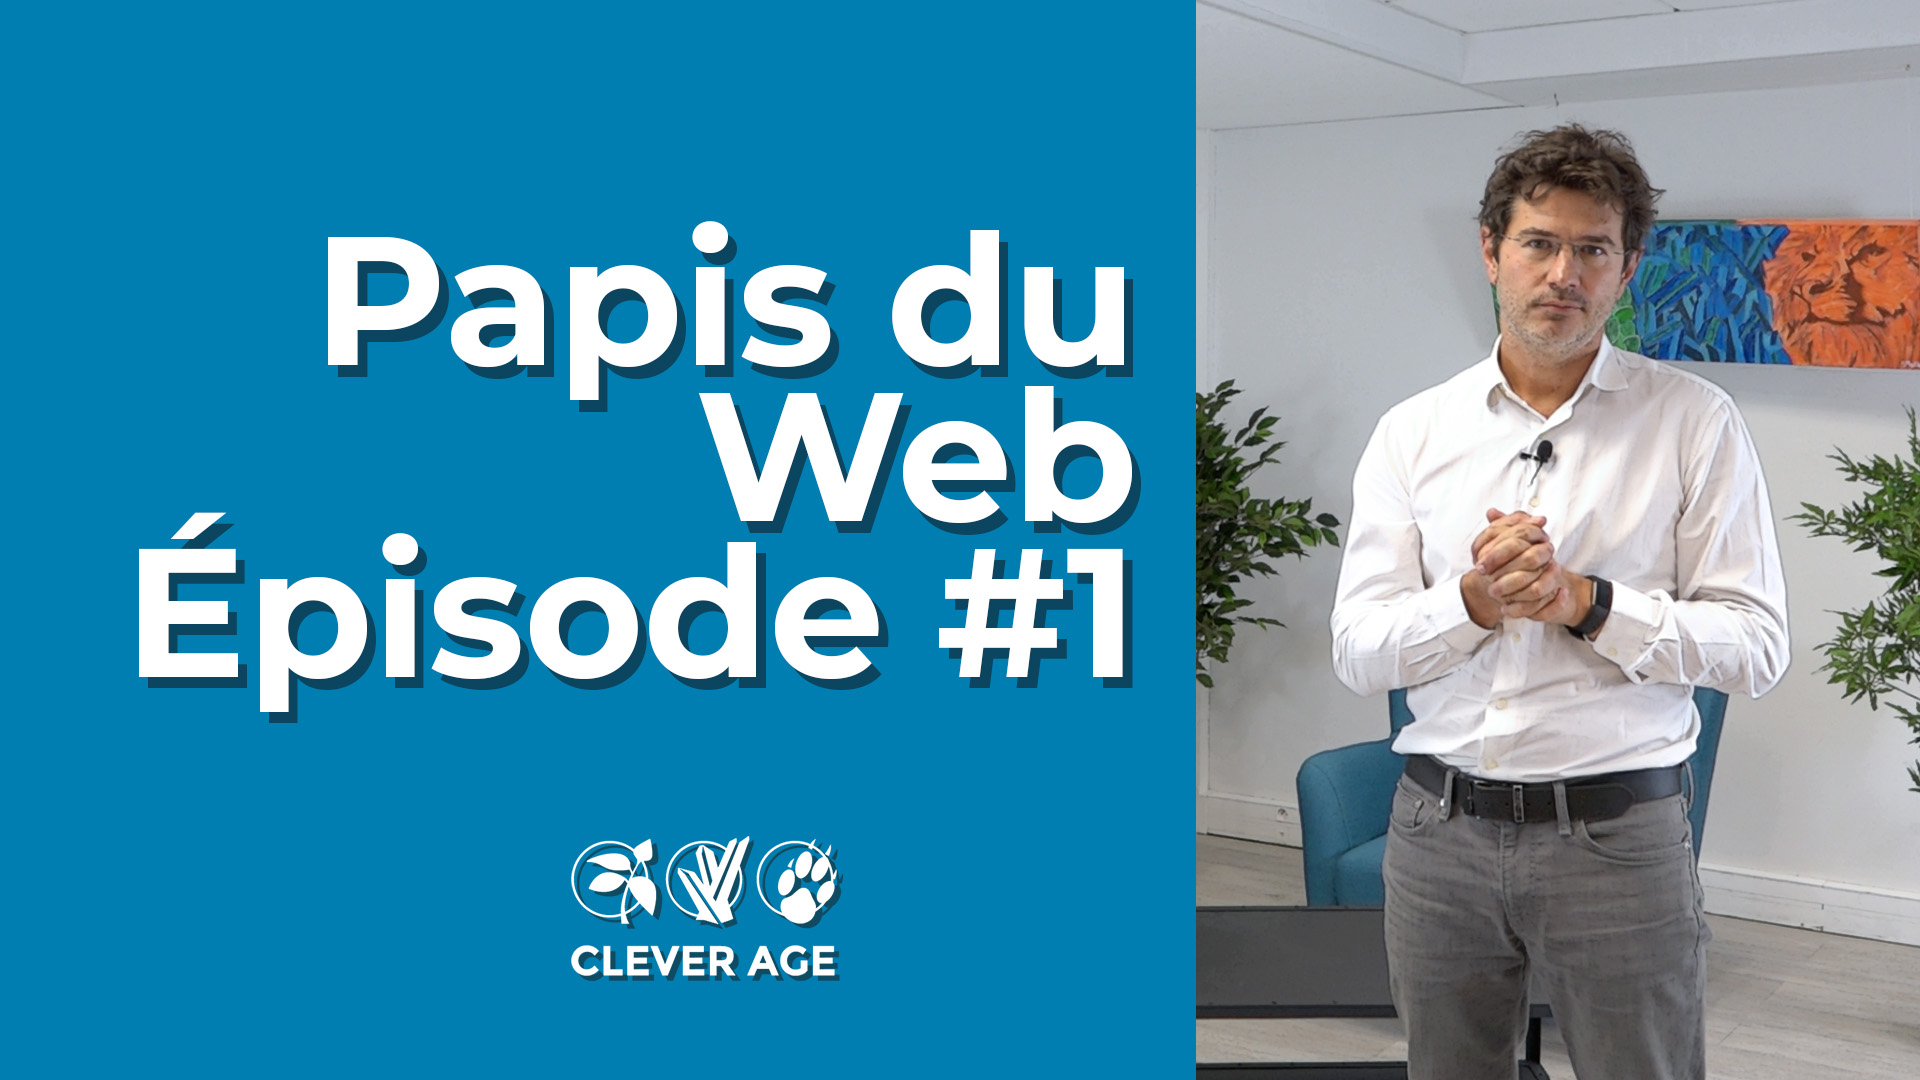 papis du web episode 1